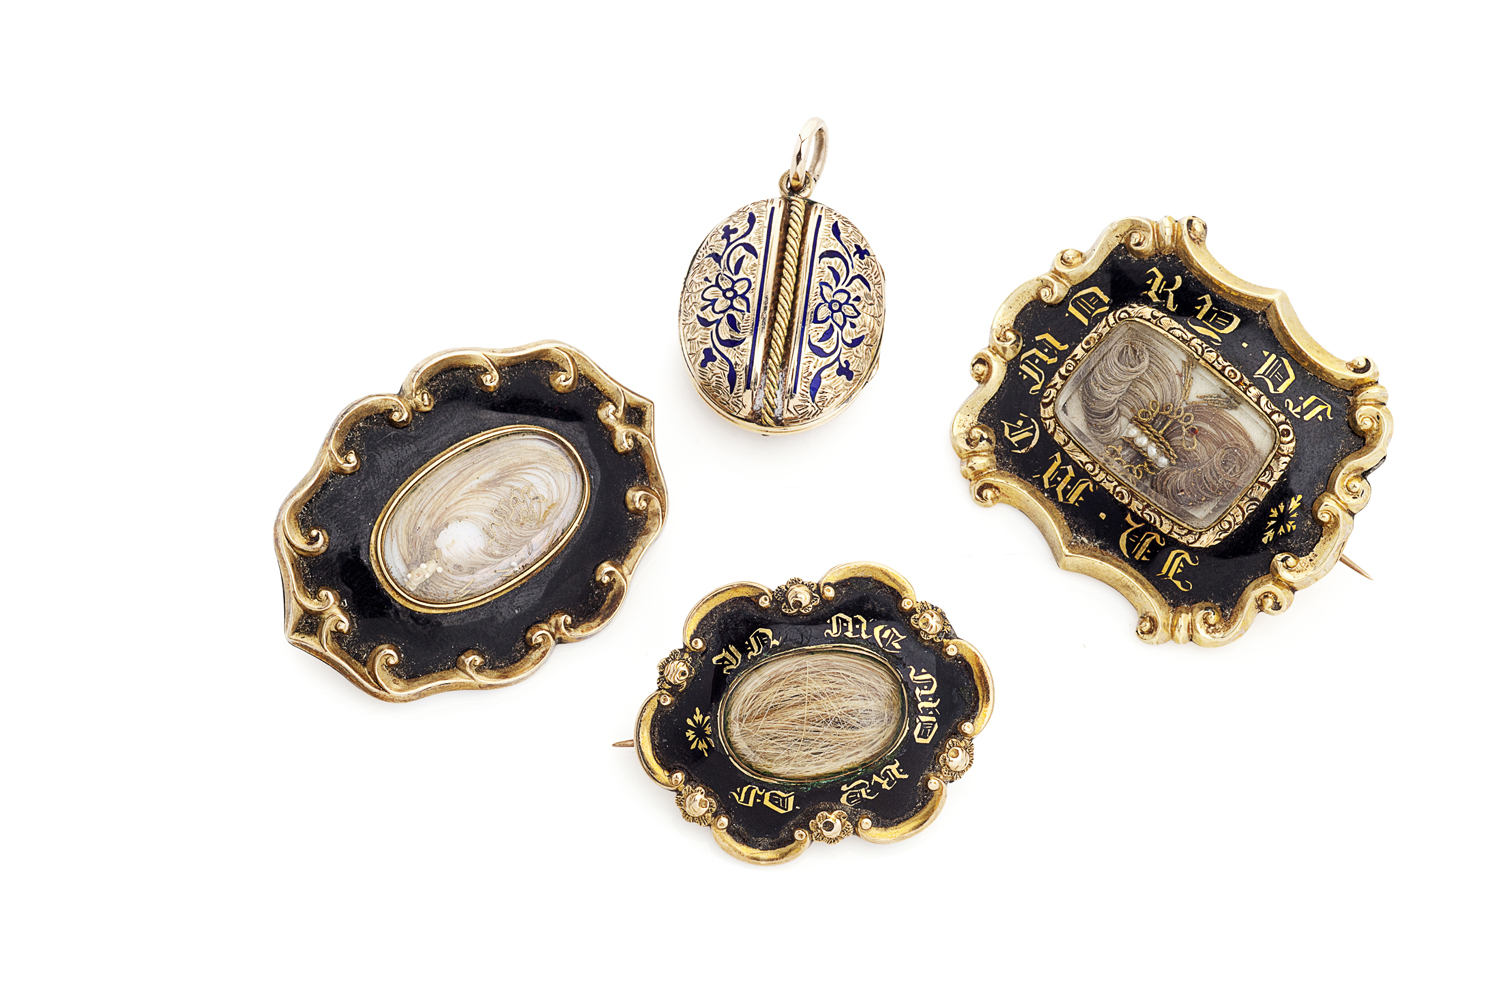 Lot 31-A collection of mourning jewellery